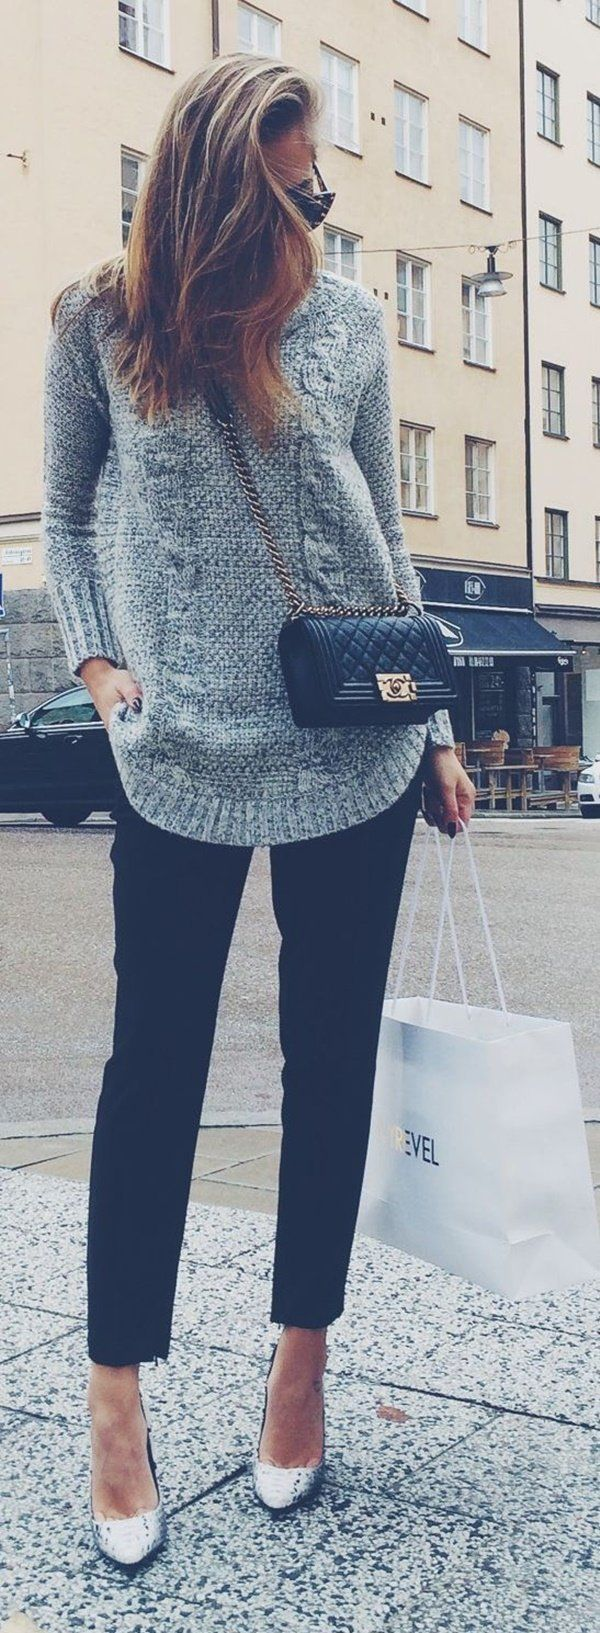 50 Winter Fashion Ideas to try this Year: 2015